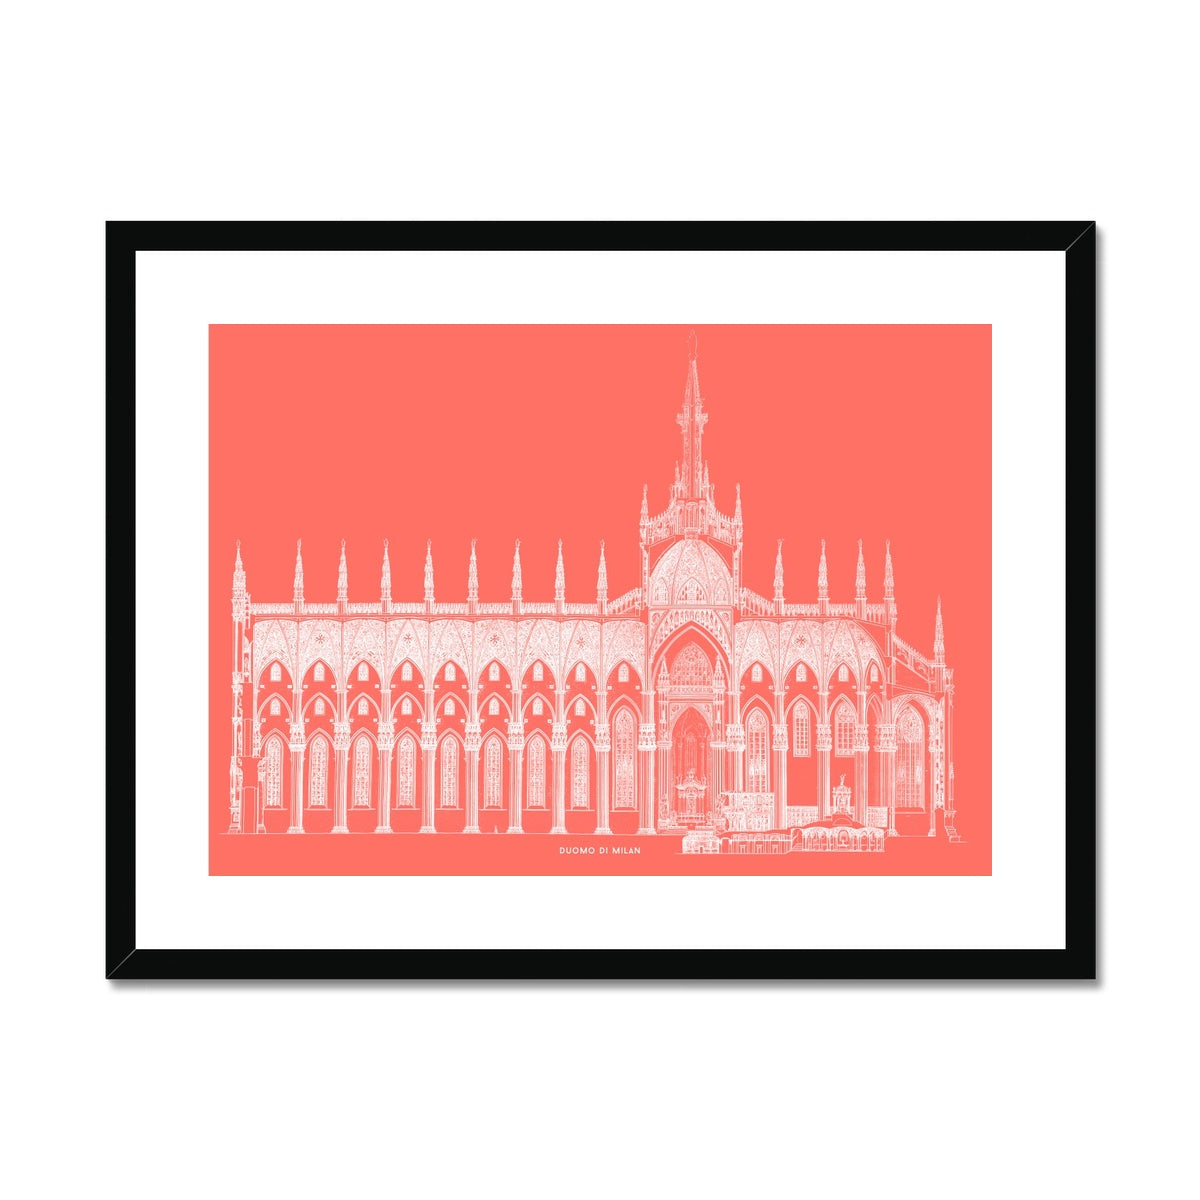 The Milan Cathedral - Side Elevation Cross Section - Red -  Framed & Mounted Print